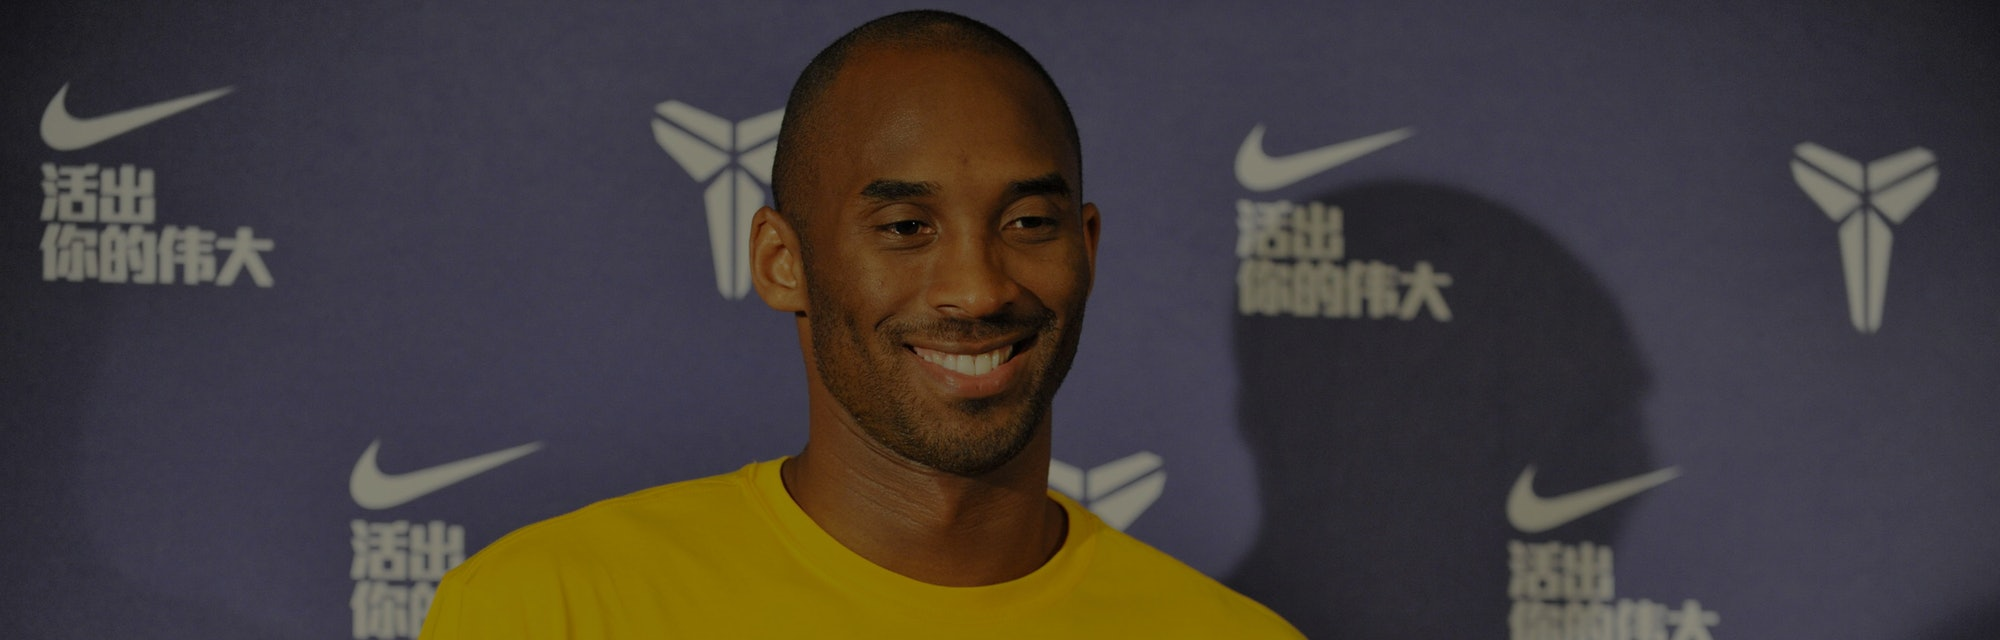 GUANGZHOU, CHINA - AUGUST 17:  (CHINA OUT) American professional basketball player Kobe Bryant of Los Angeles Lakers visits a Nike store at Grandview Plaza on August 17, 2012 in Guangzhou, China.  (Photo by Visual China Group via Getty Images/Visual China Group via Getty Images)